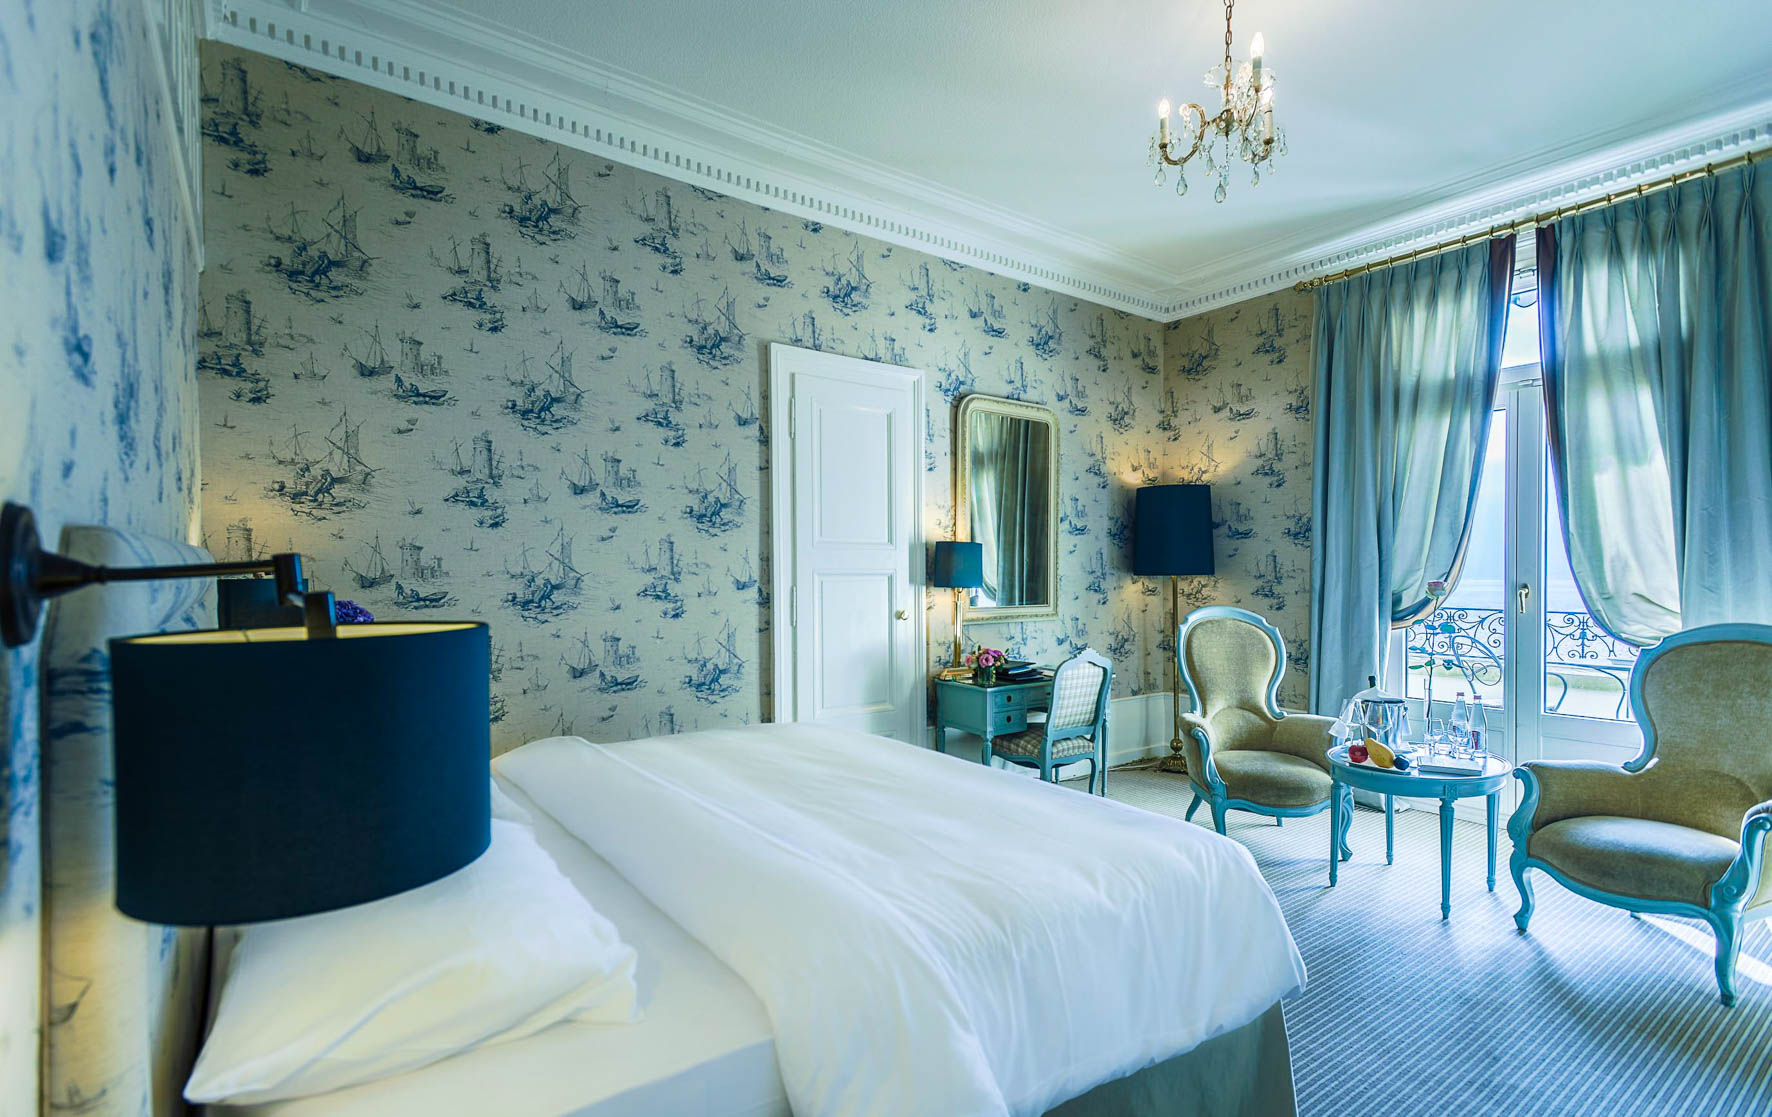 The Trois Couronnes Hotel | Hotel & SPA, Royal Palace in Vevey